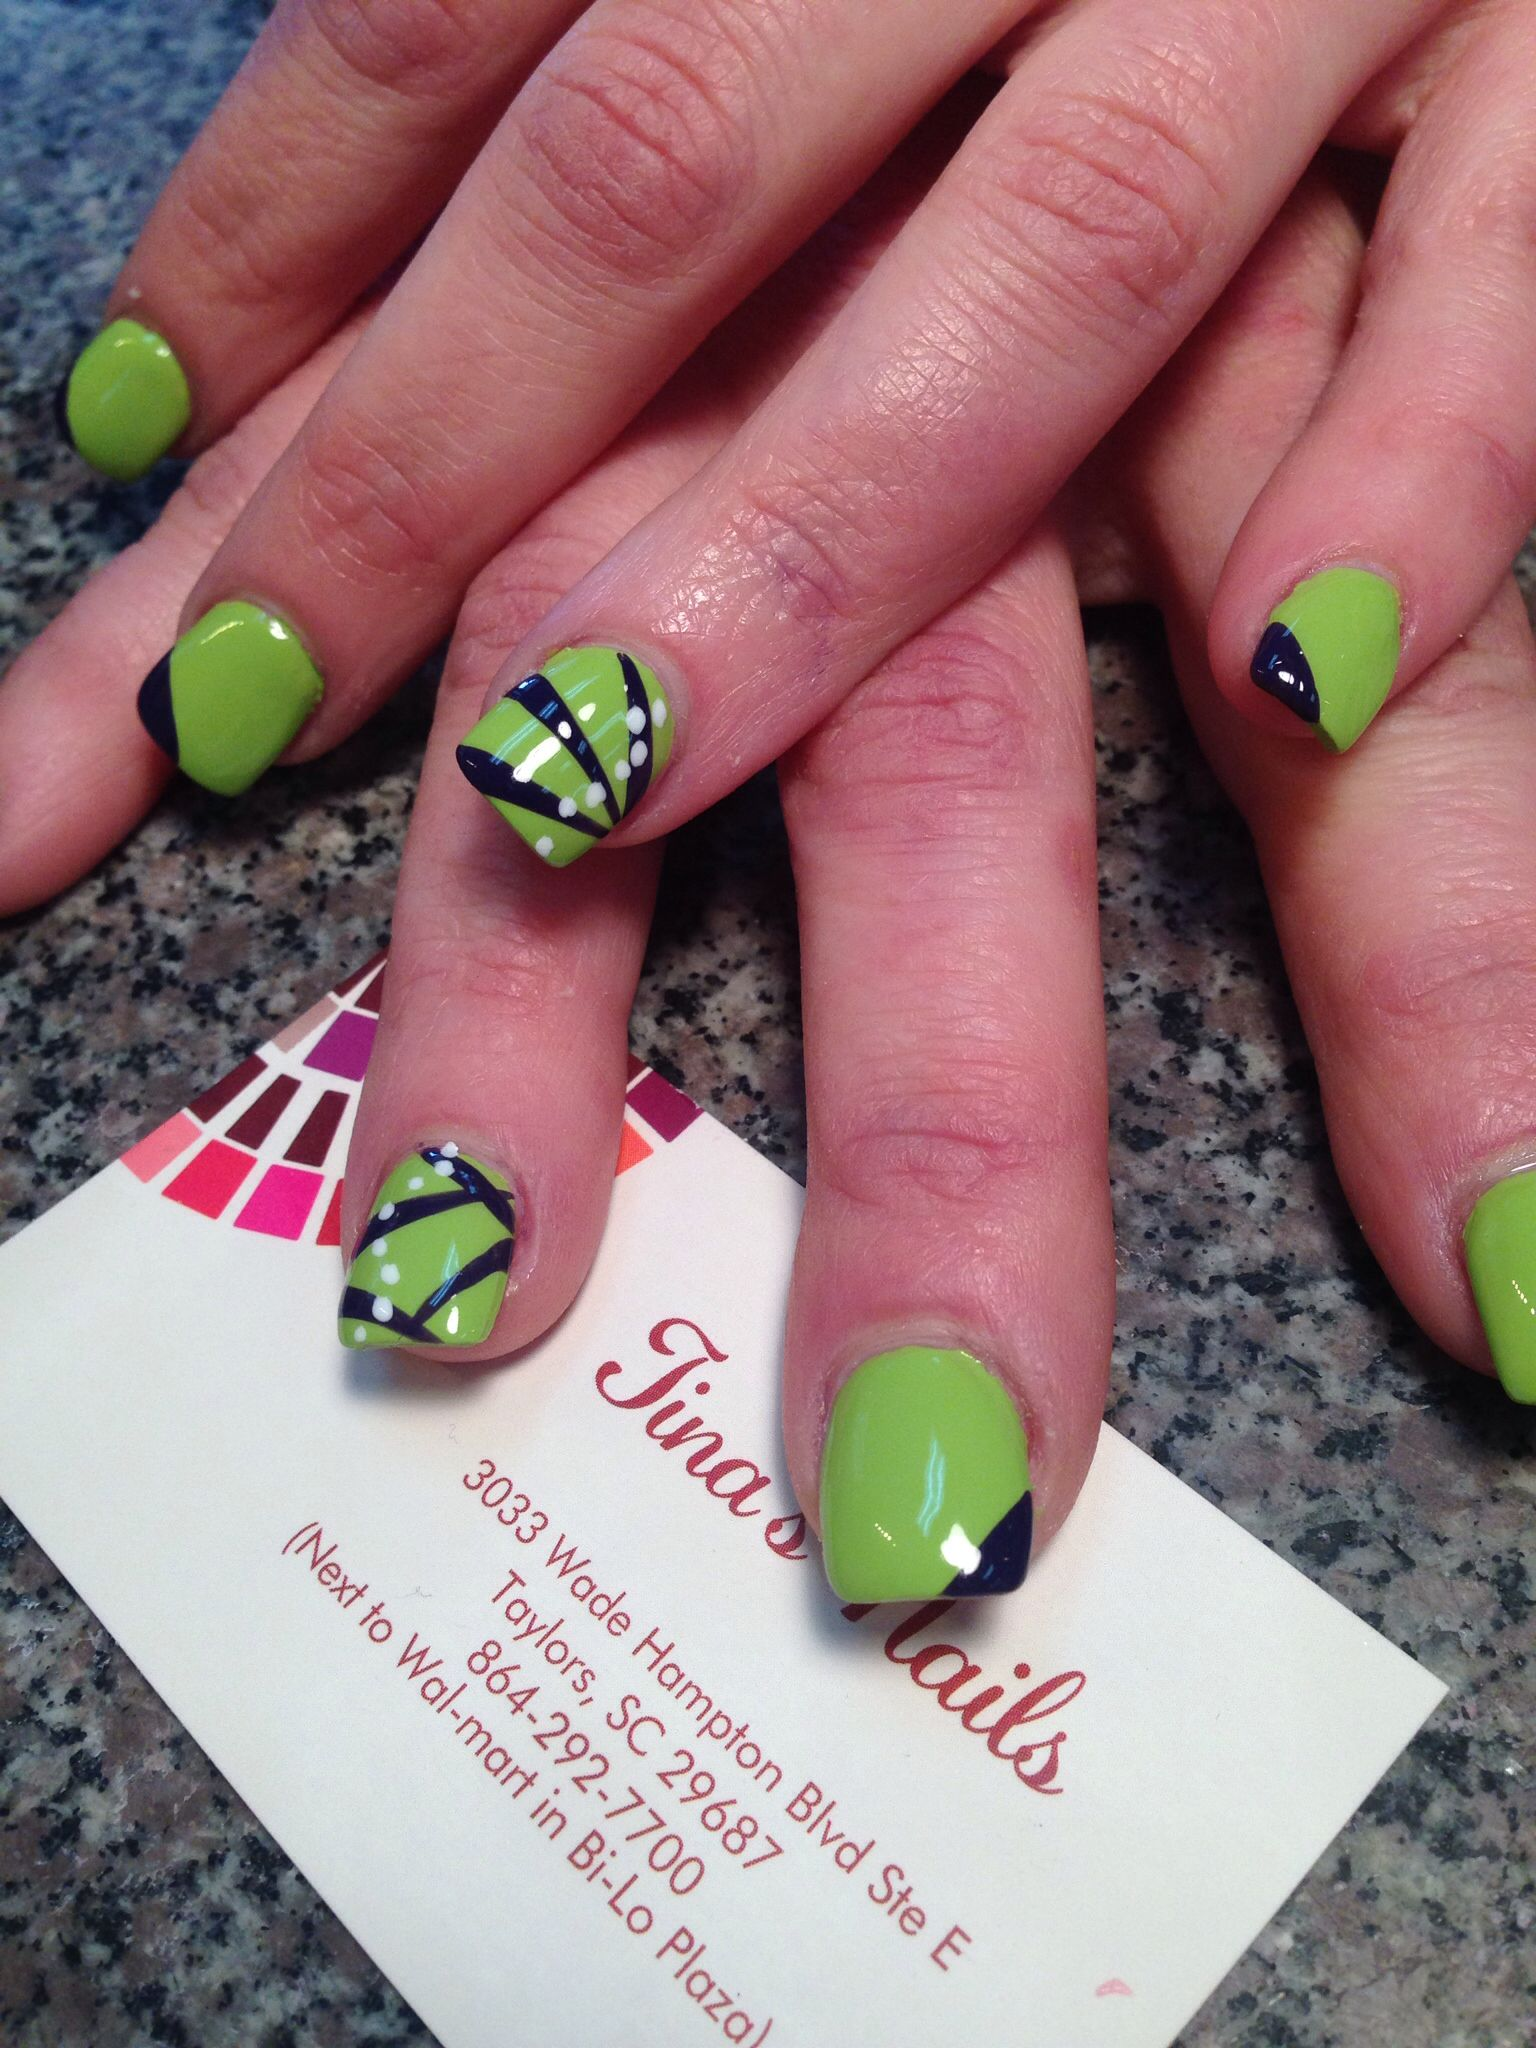 Nail Art Nail Designs Free Hand 3d Art Tinas Nails Designs From